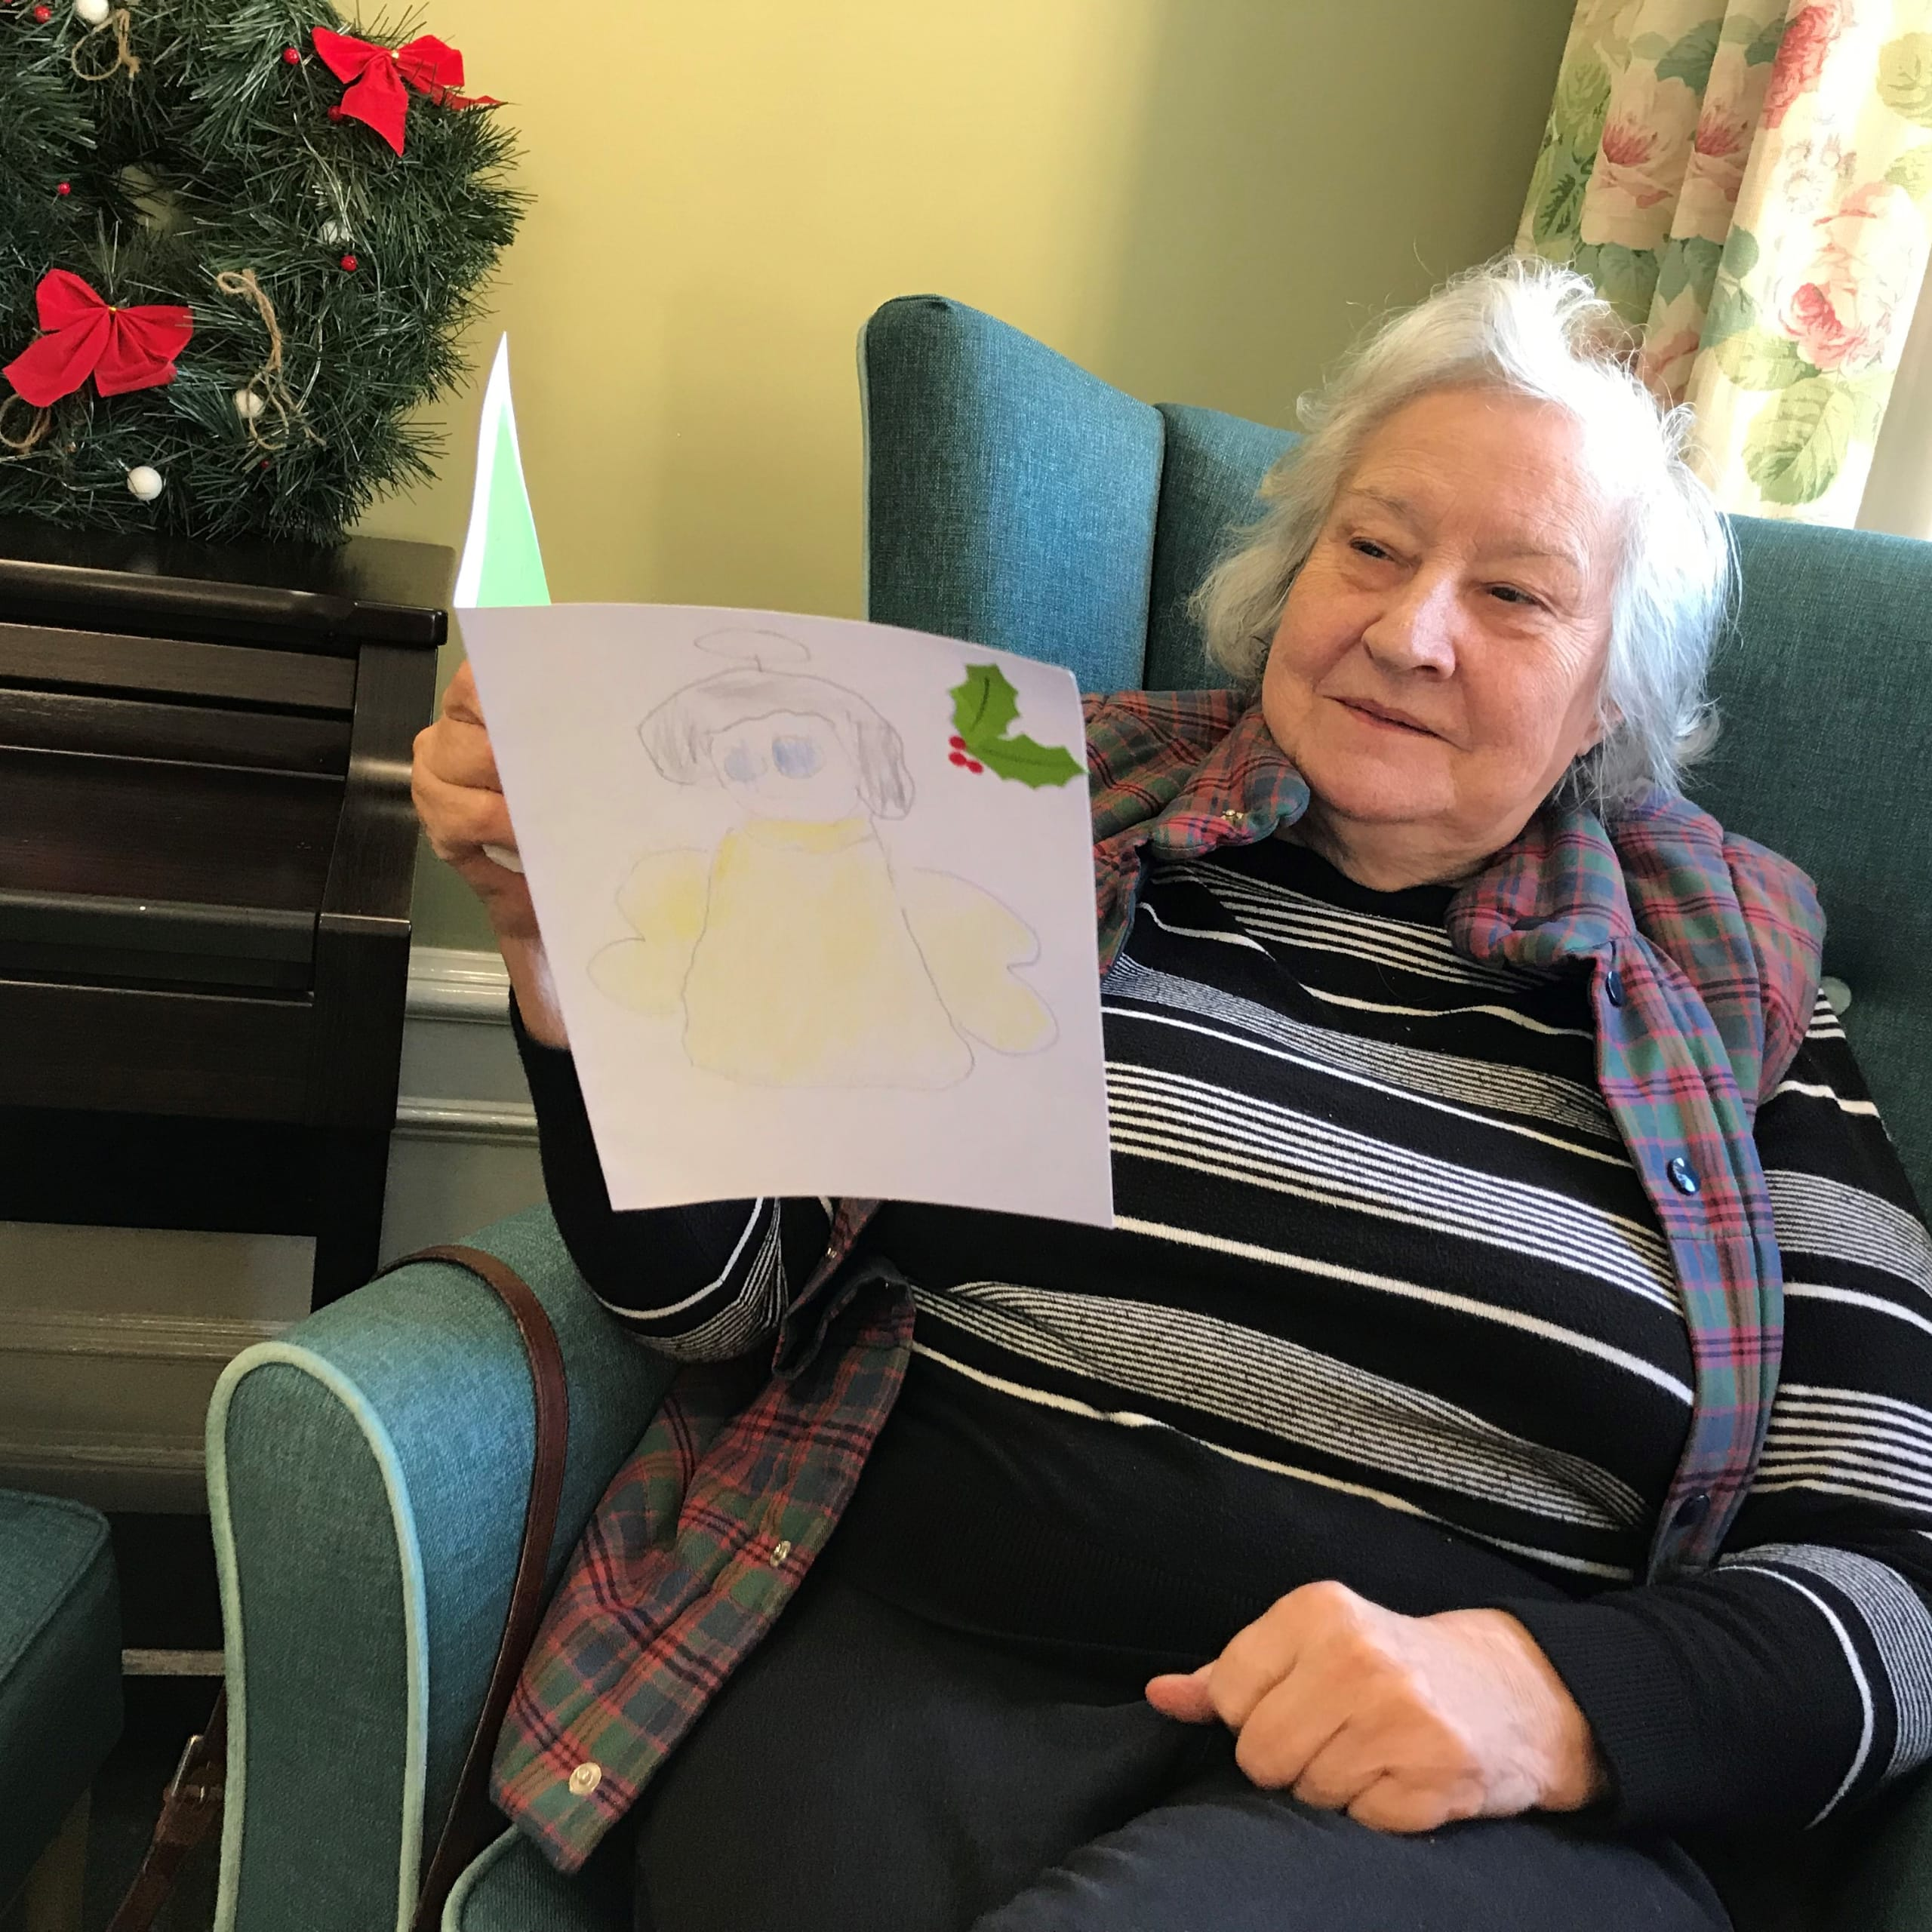 Featherton House Care Home resident Jean Waddup with her handmade Christmas card from local school children.